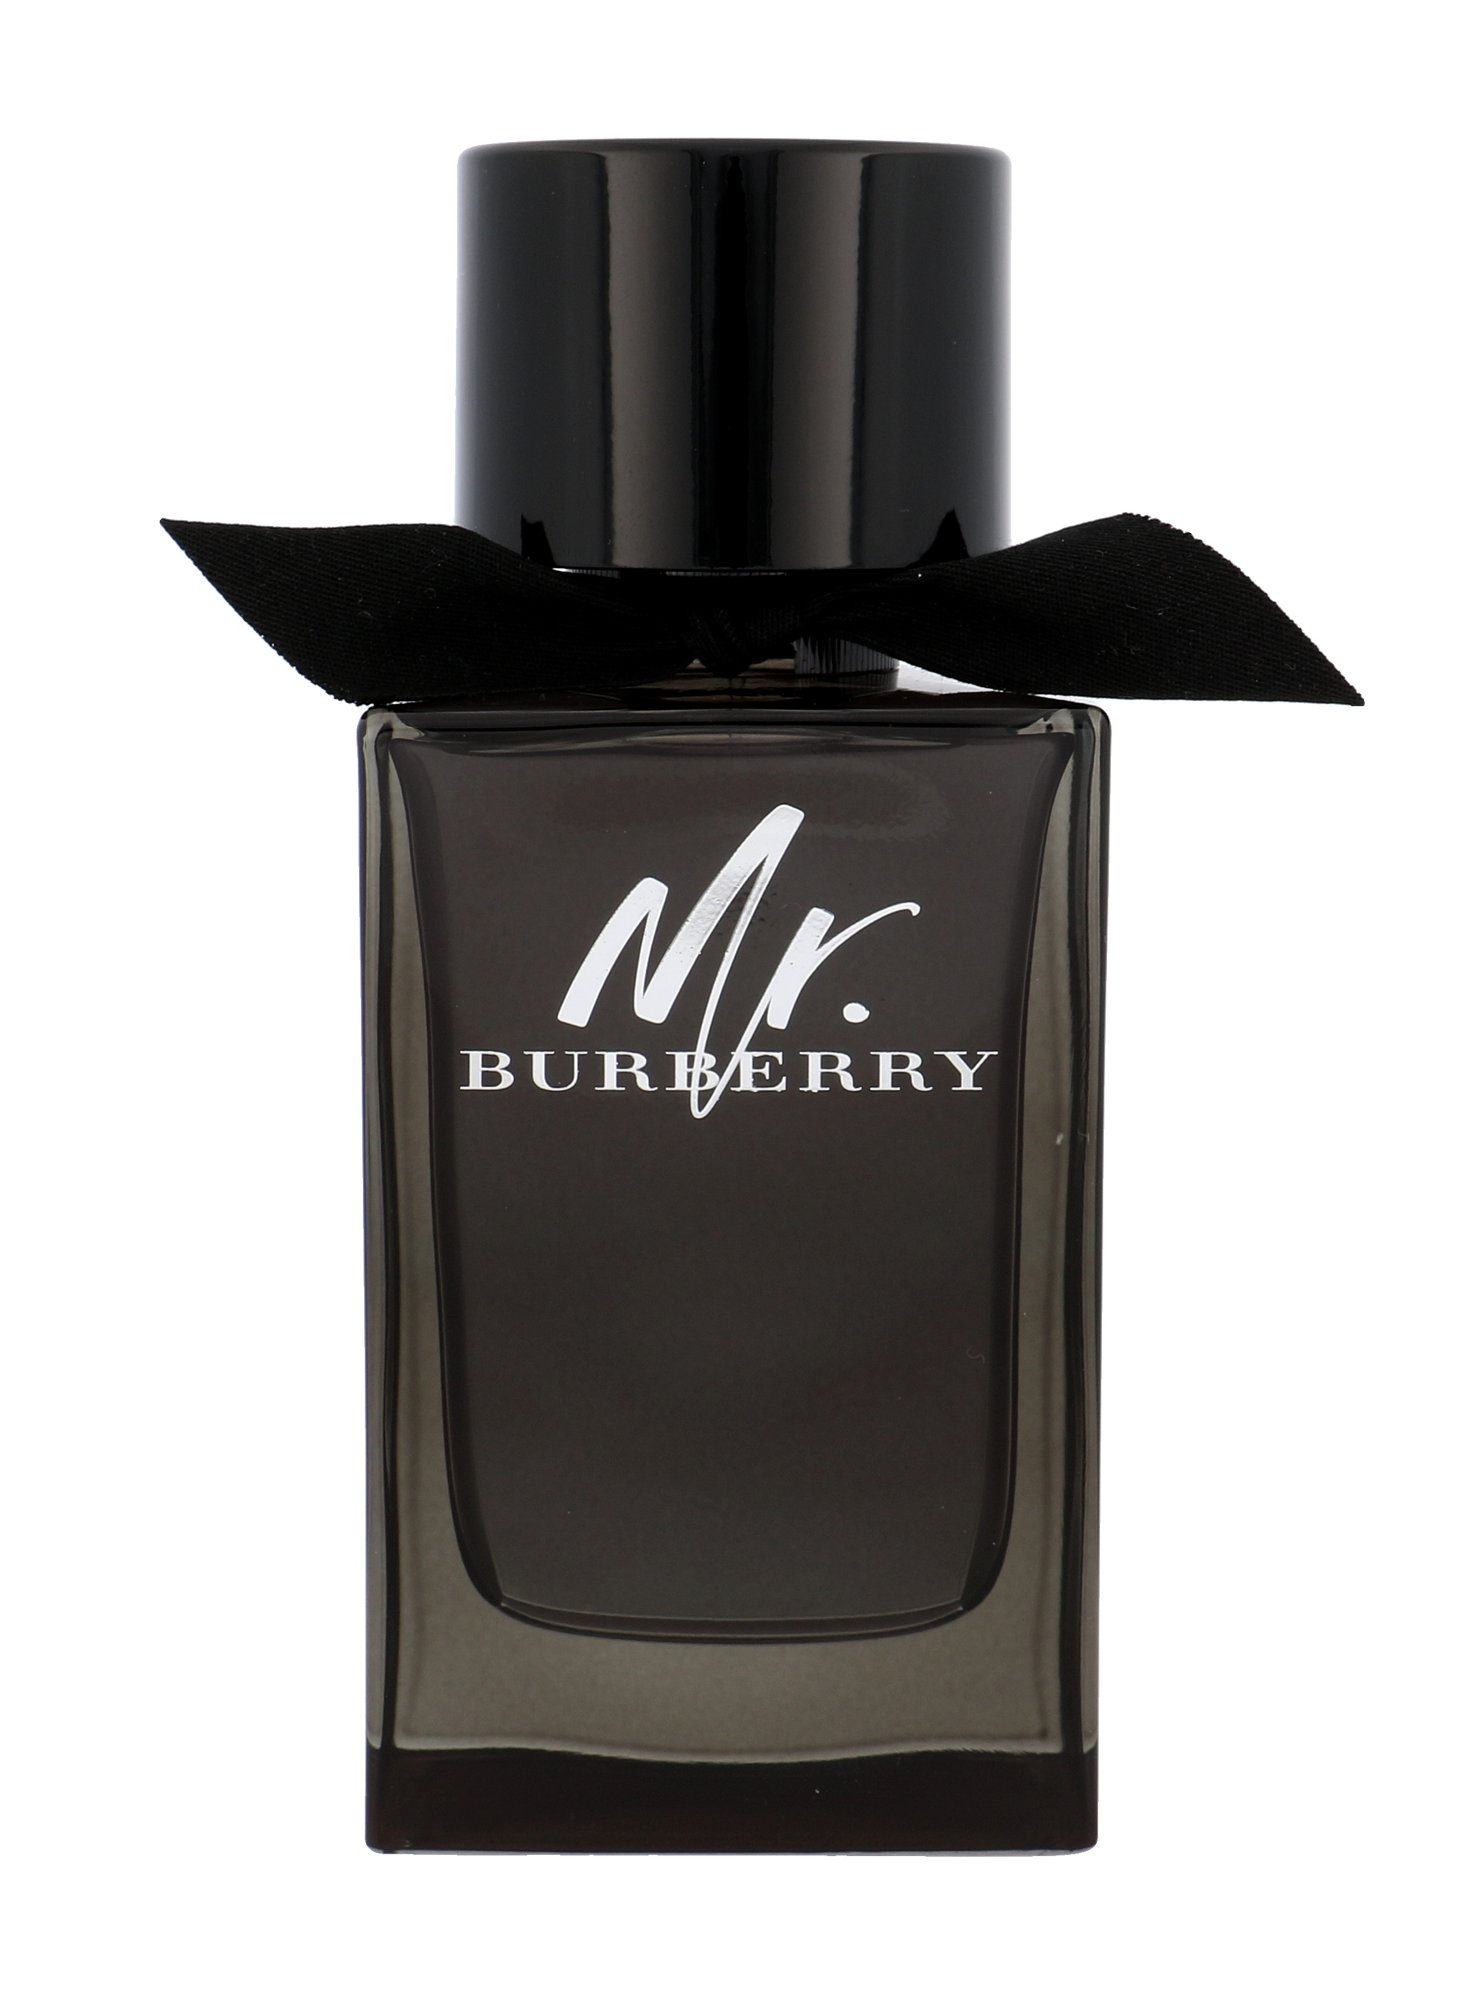 Burberry Mr. Burberry, Parfumovaná voda 150ml